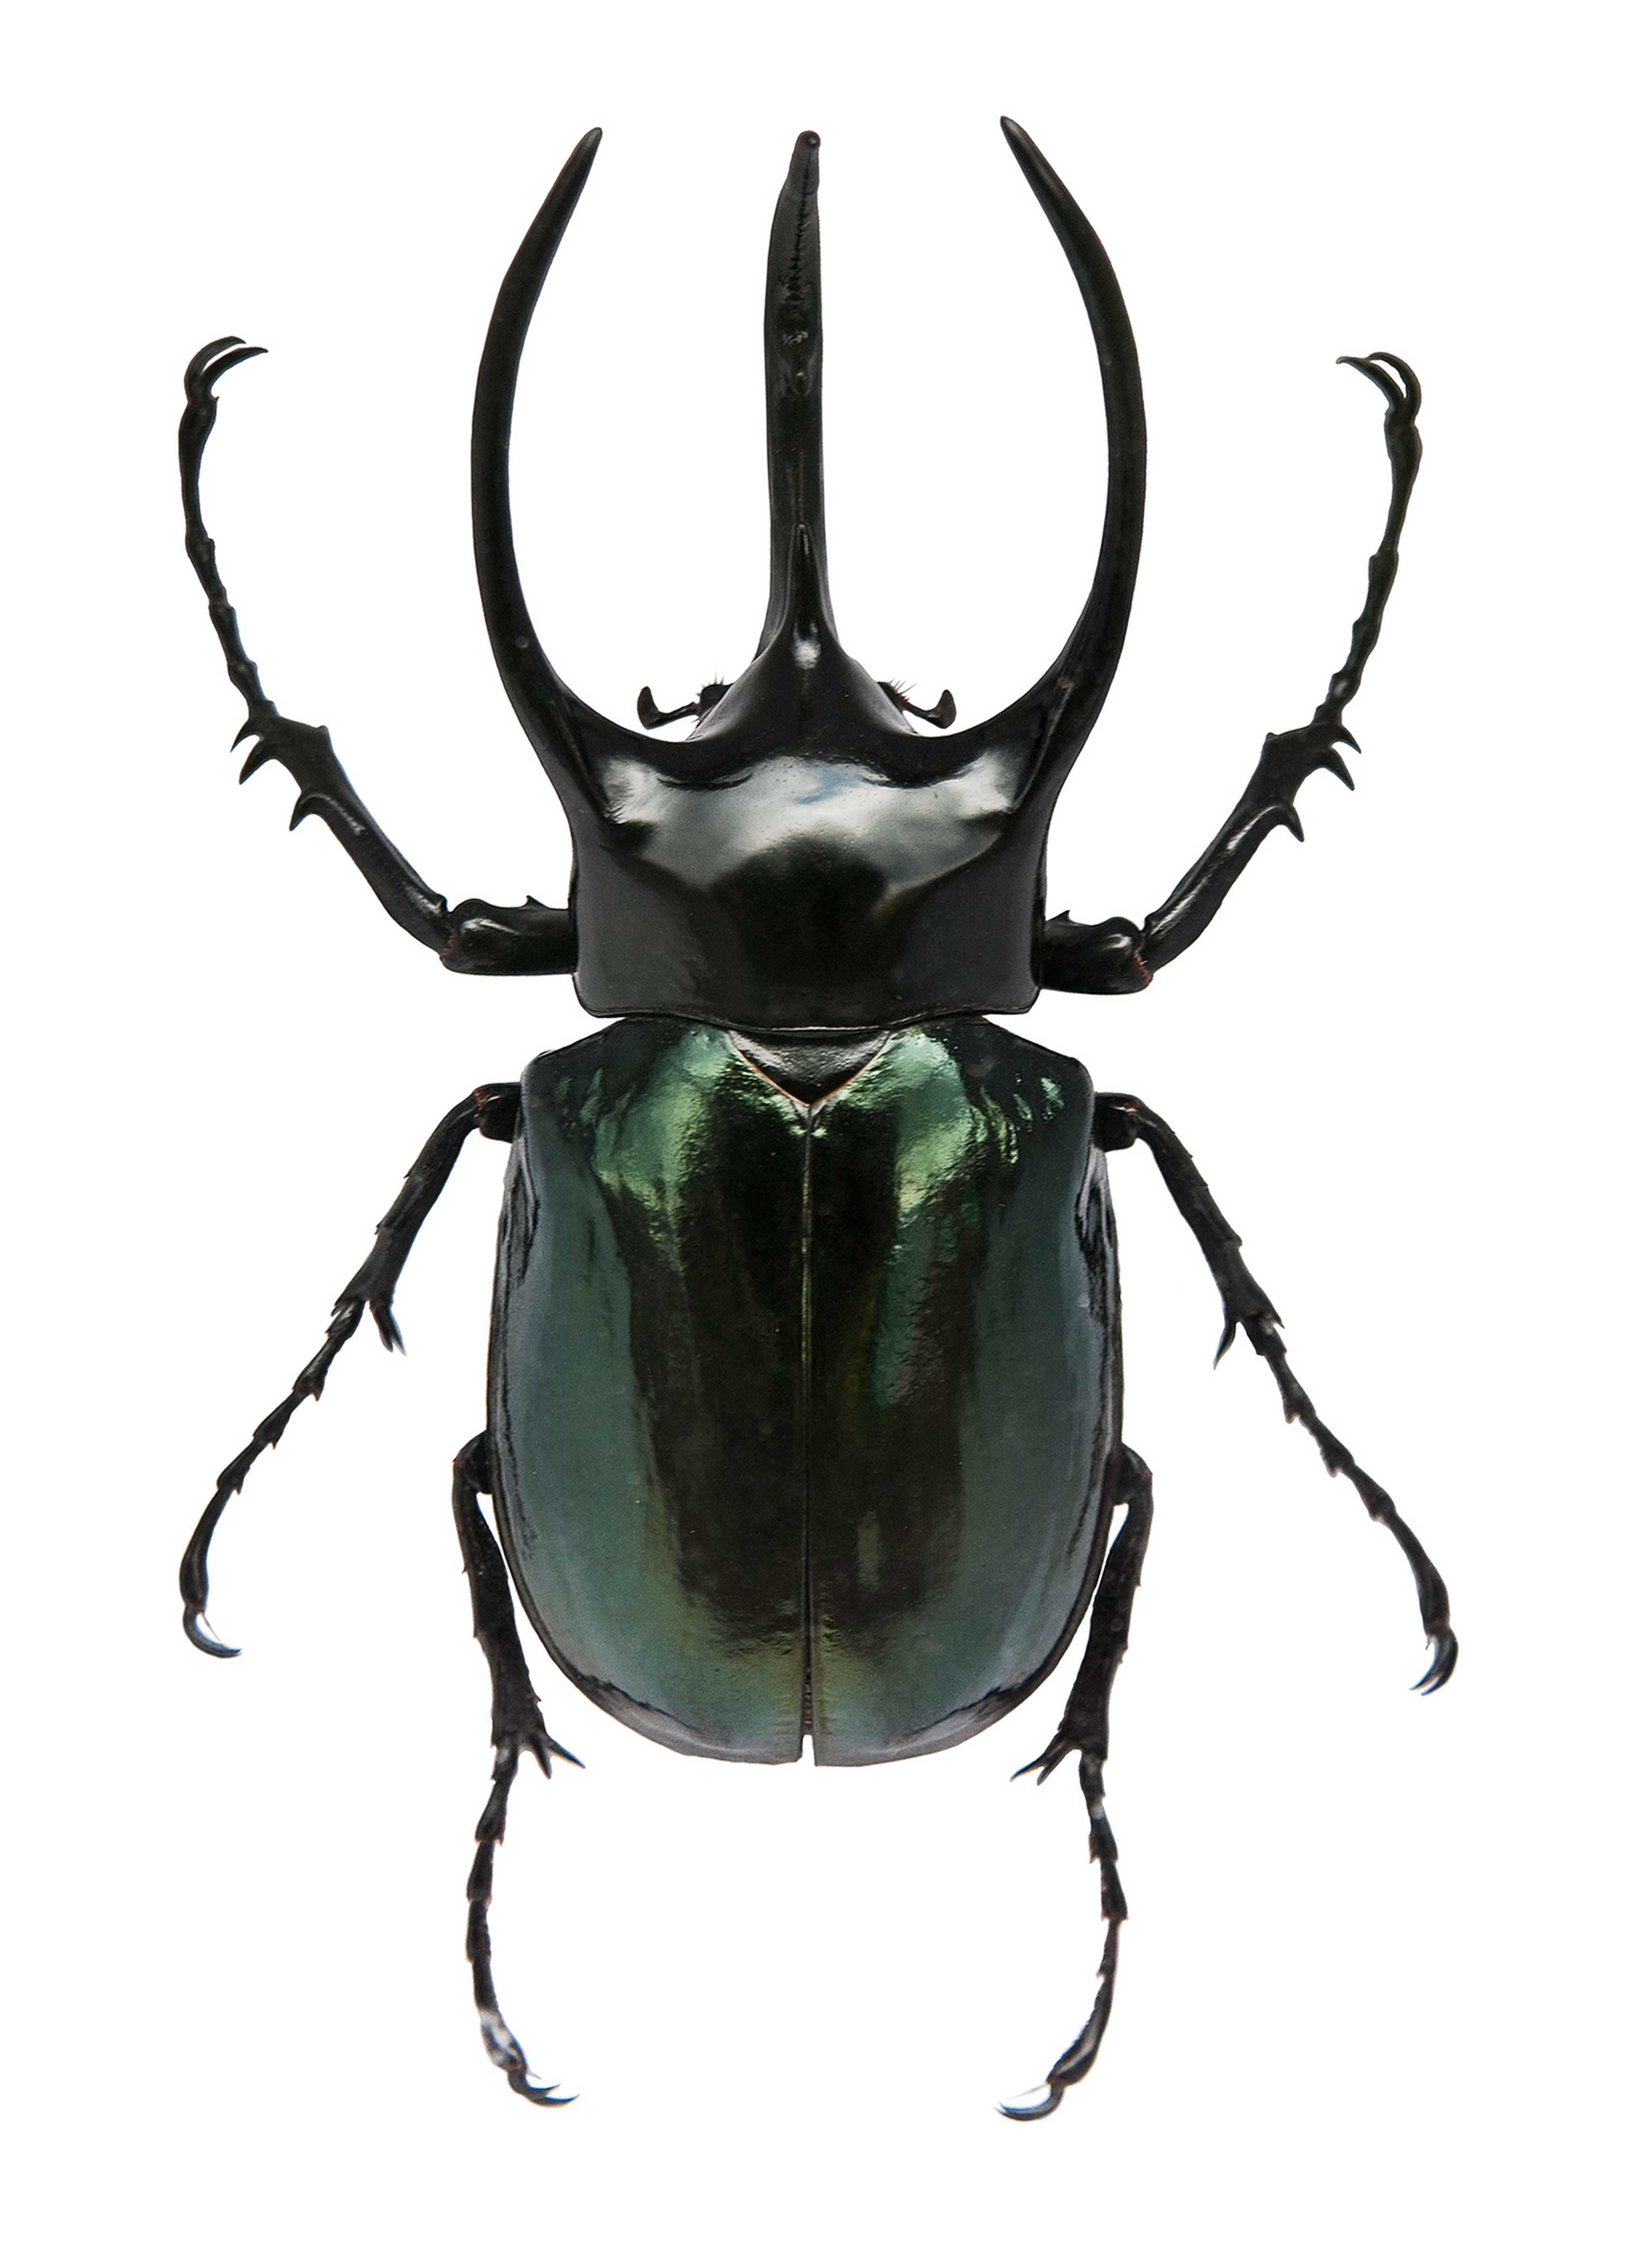 Images of Stag Beetle | 3428x4780